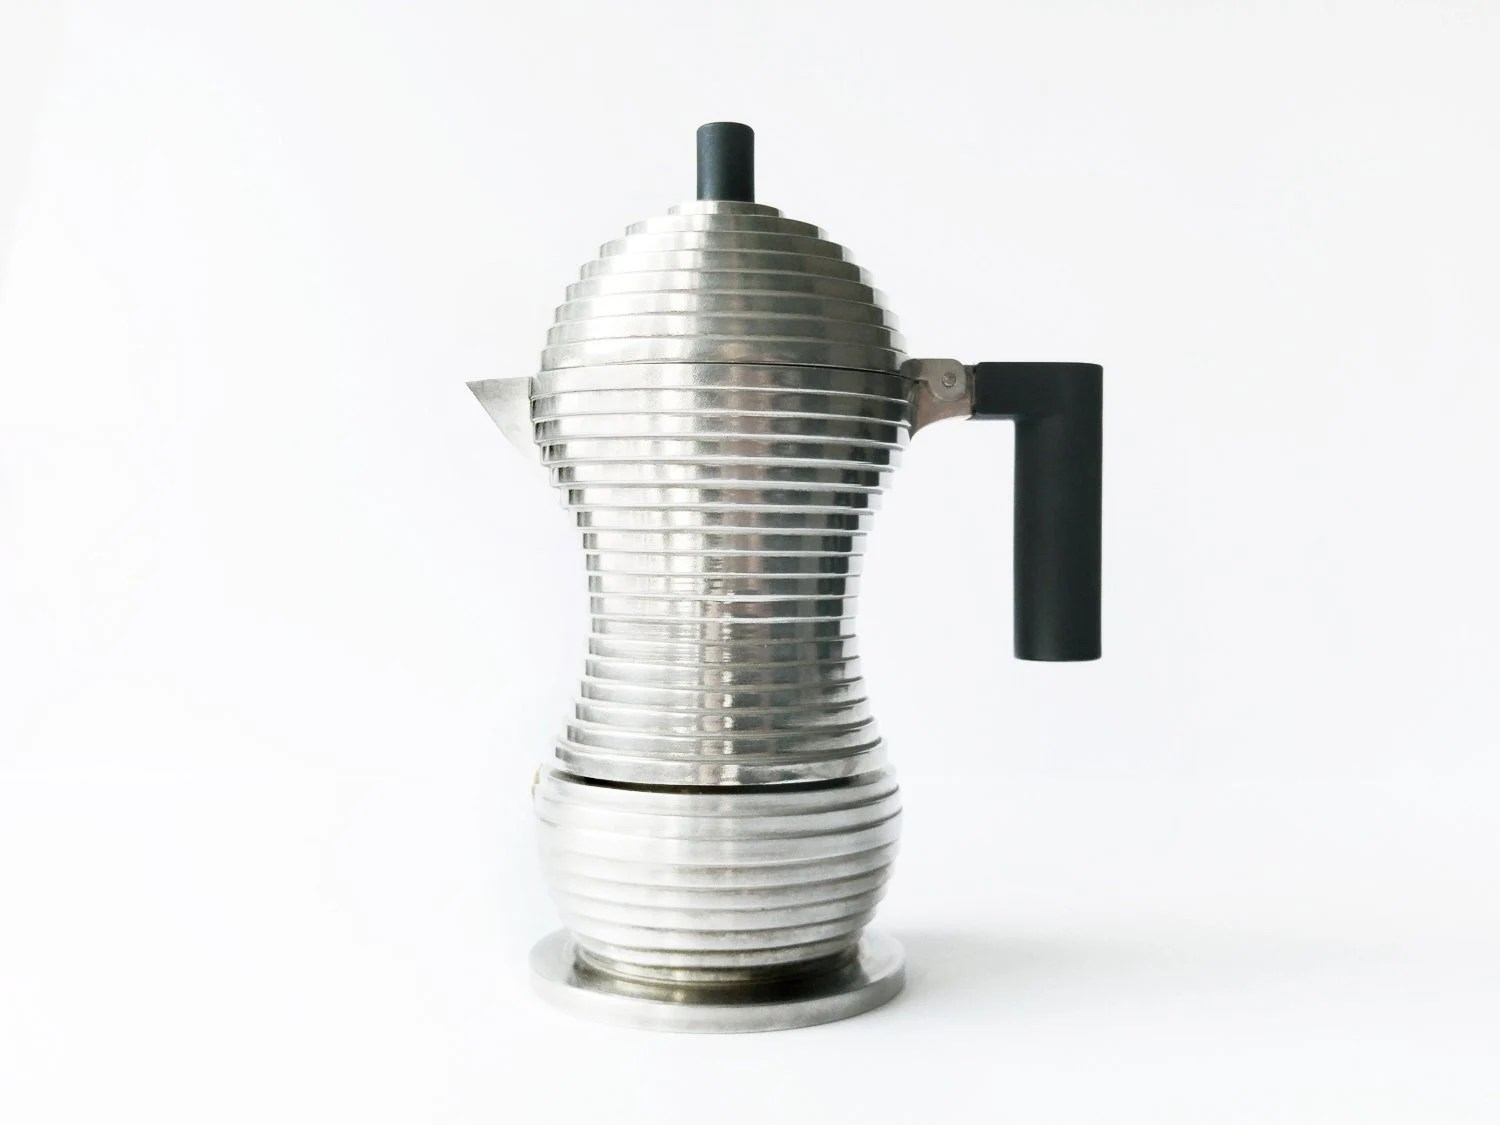 Alessi Espressokocher Alessi Pulcina Espresso Coffee Maker Coffeemaker Designer Item Memphis Milano Modernist Iconic Collectible Home Kitchen Dining 80s Mdl02 6